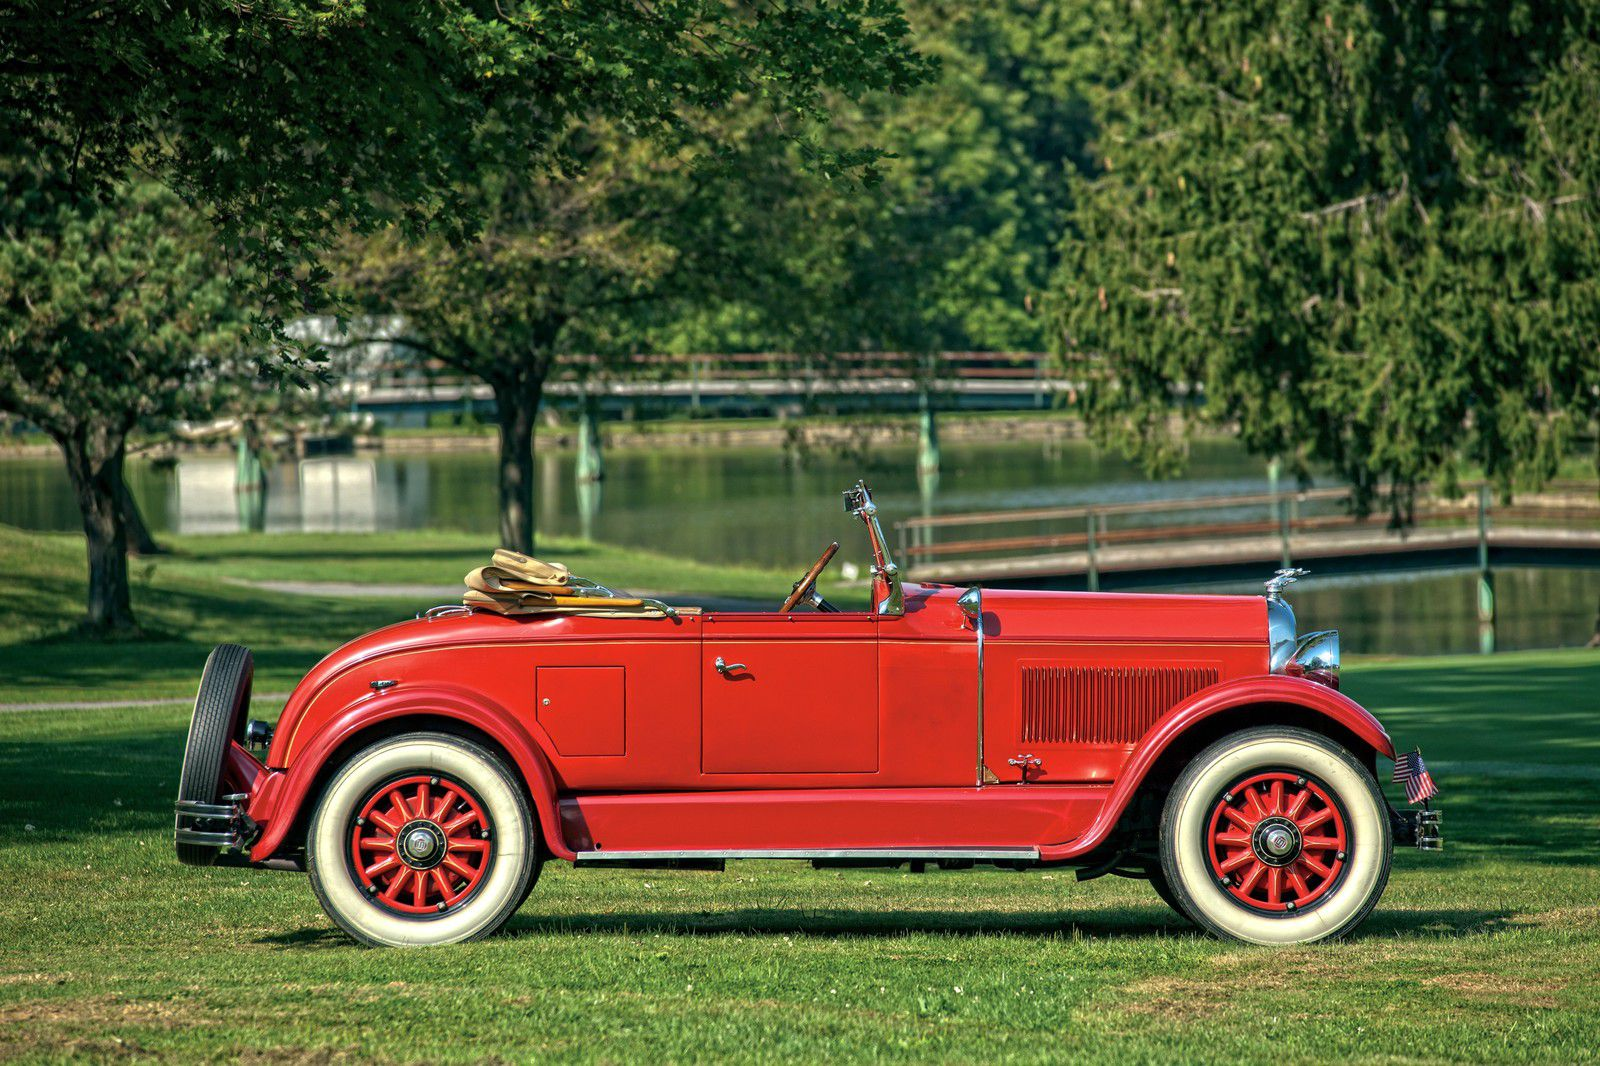 VOITURES DE LEGENDE (1247) : STUDEBAKER  COMMANDER REGAL RUMBLE SEAT ROADSTER - 1928